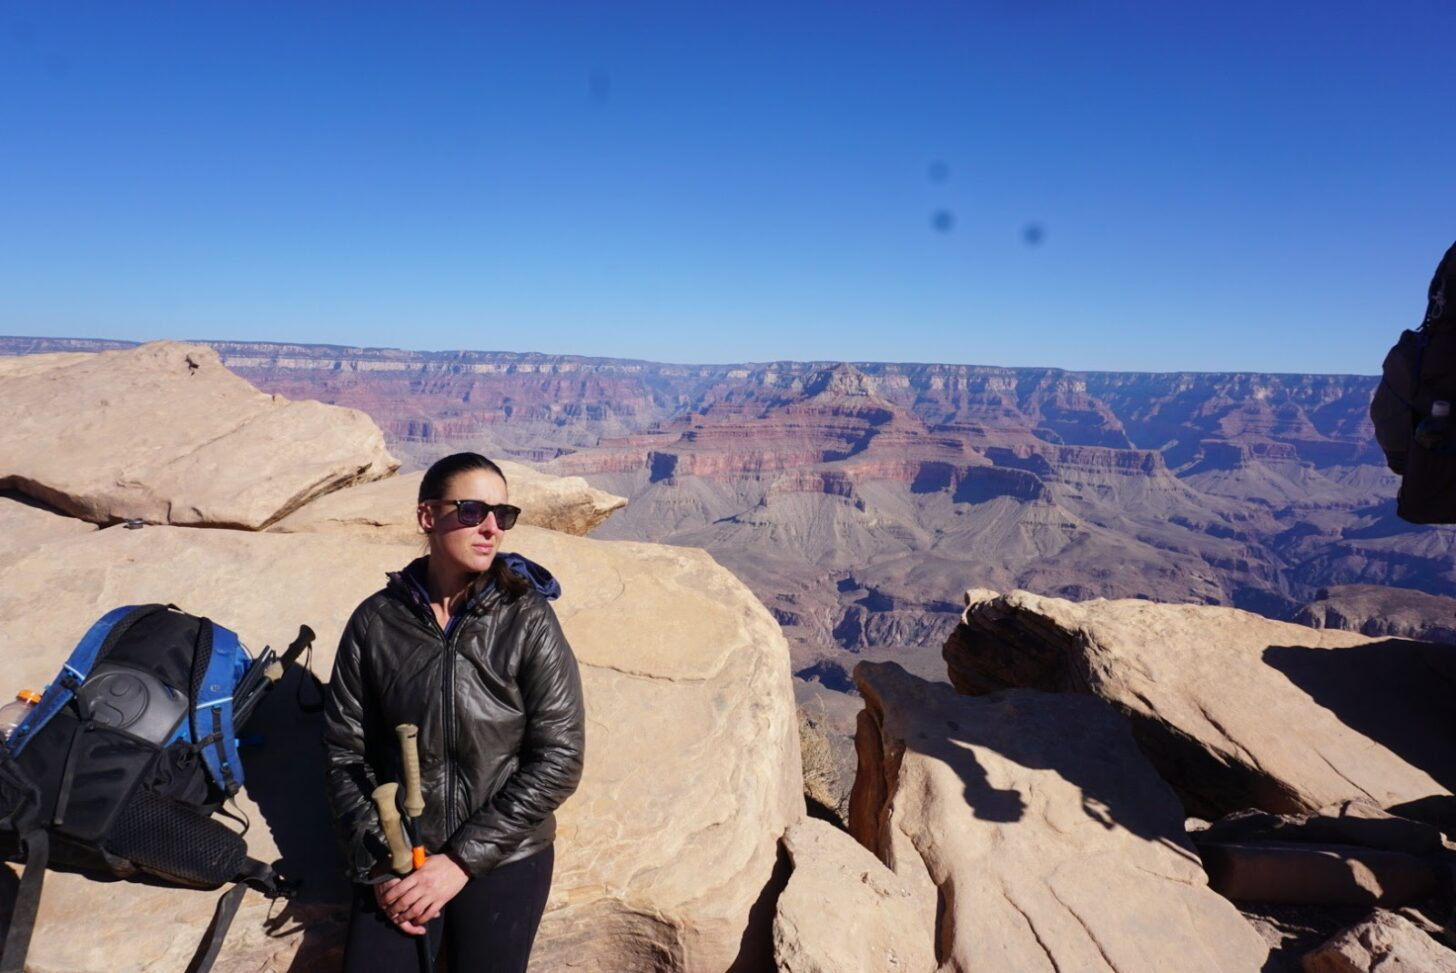 A woman in sunglasses sits on a ledge above the grand canyon